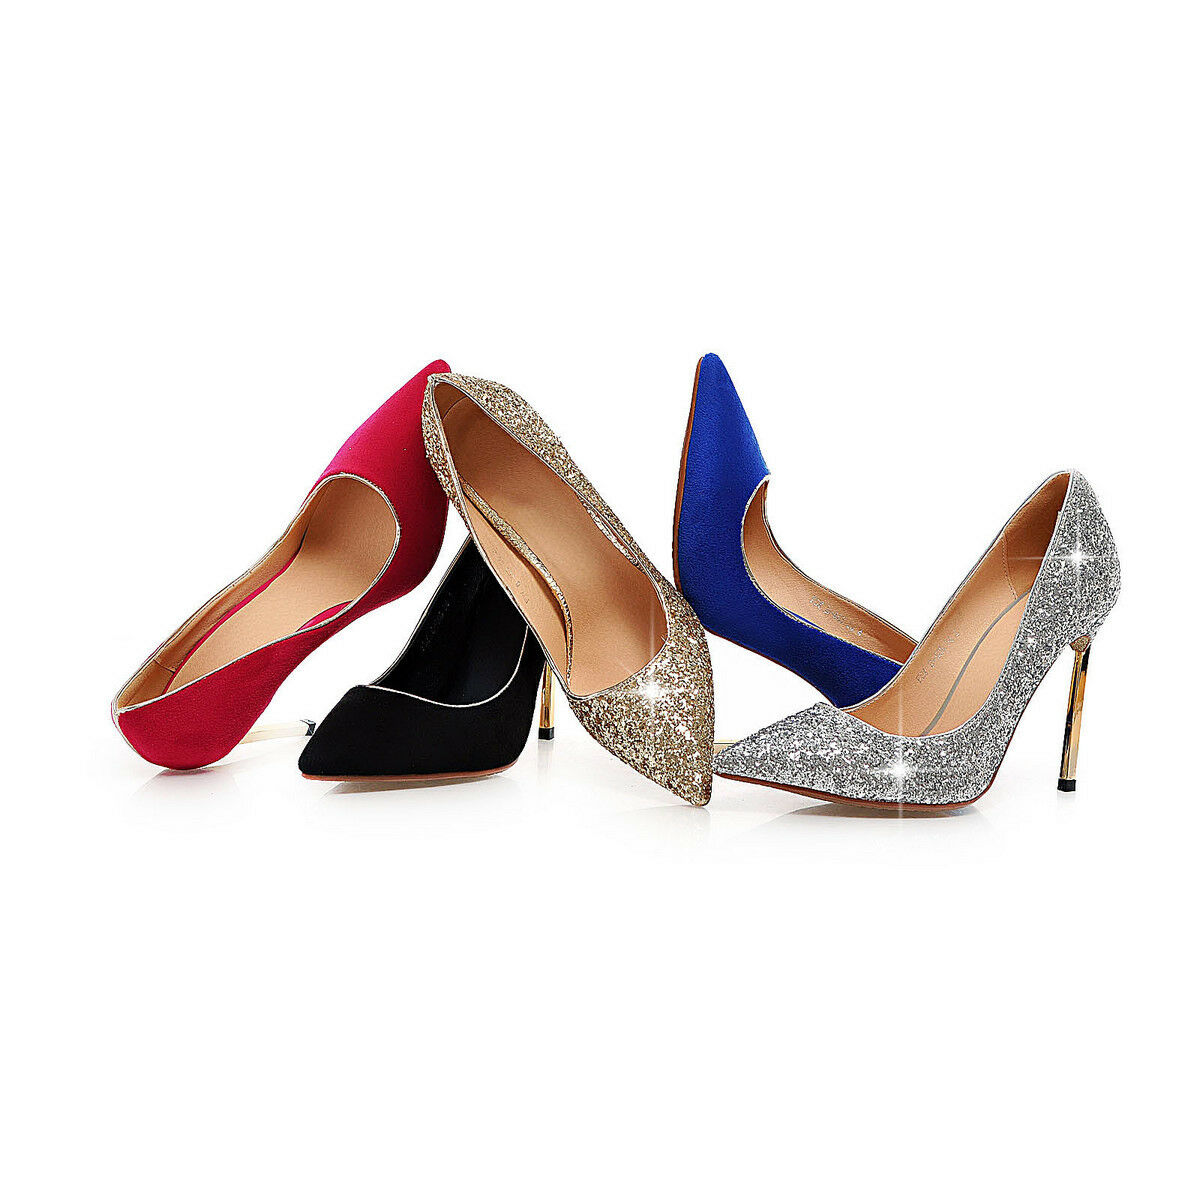 Women's Heels High Heels Women's Pointed Shoes Fashion Shiny Glitter Pumps US Size 2~10.5 D605 8da320